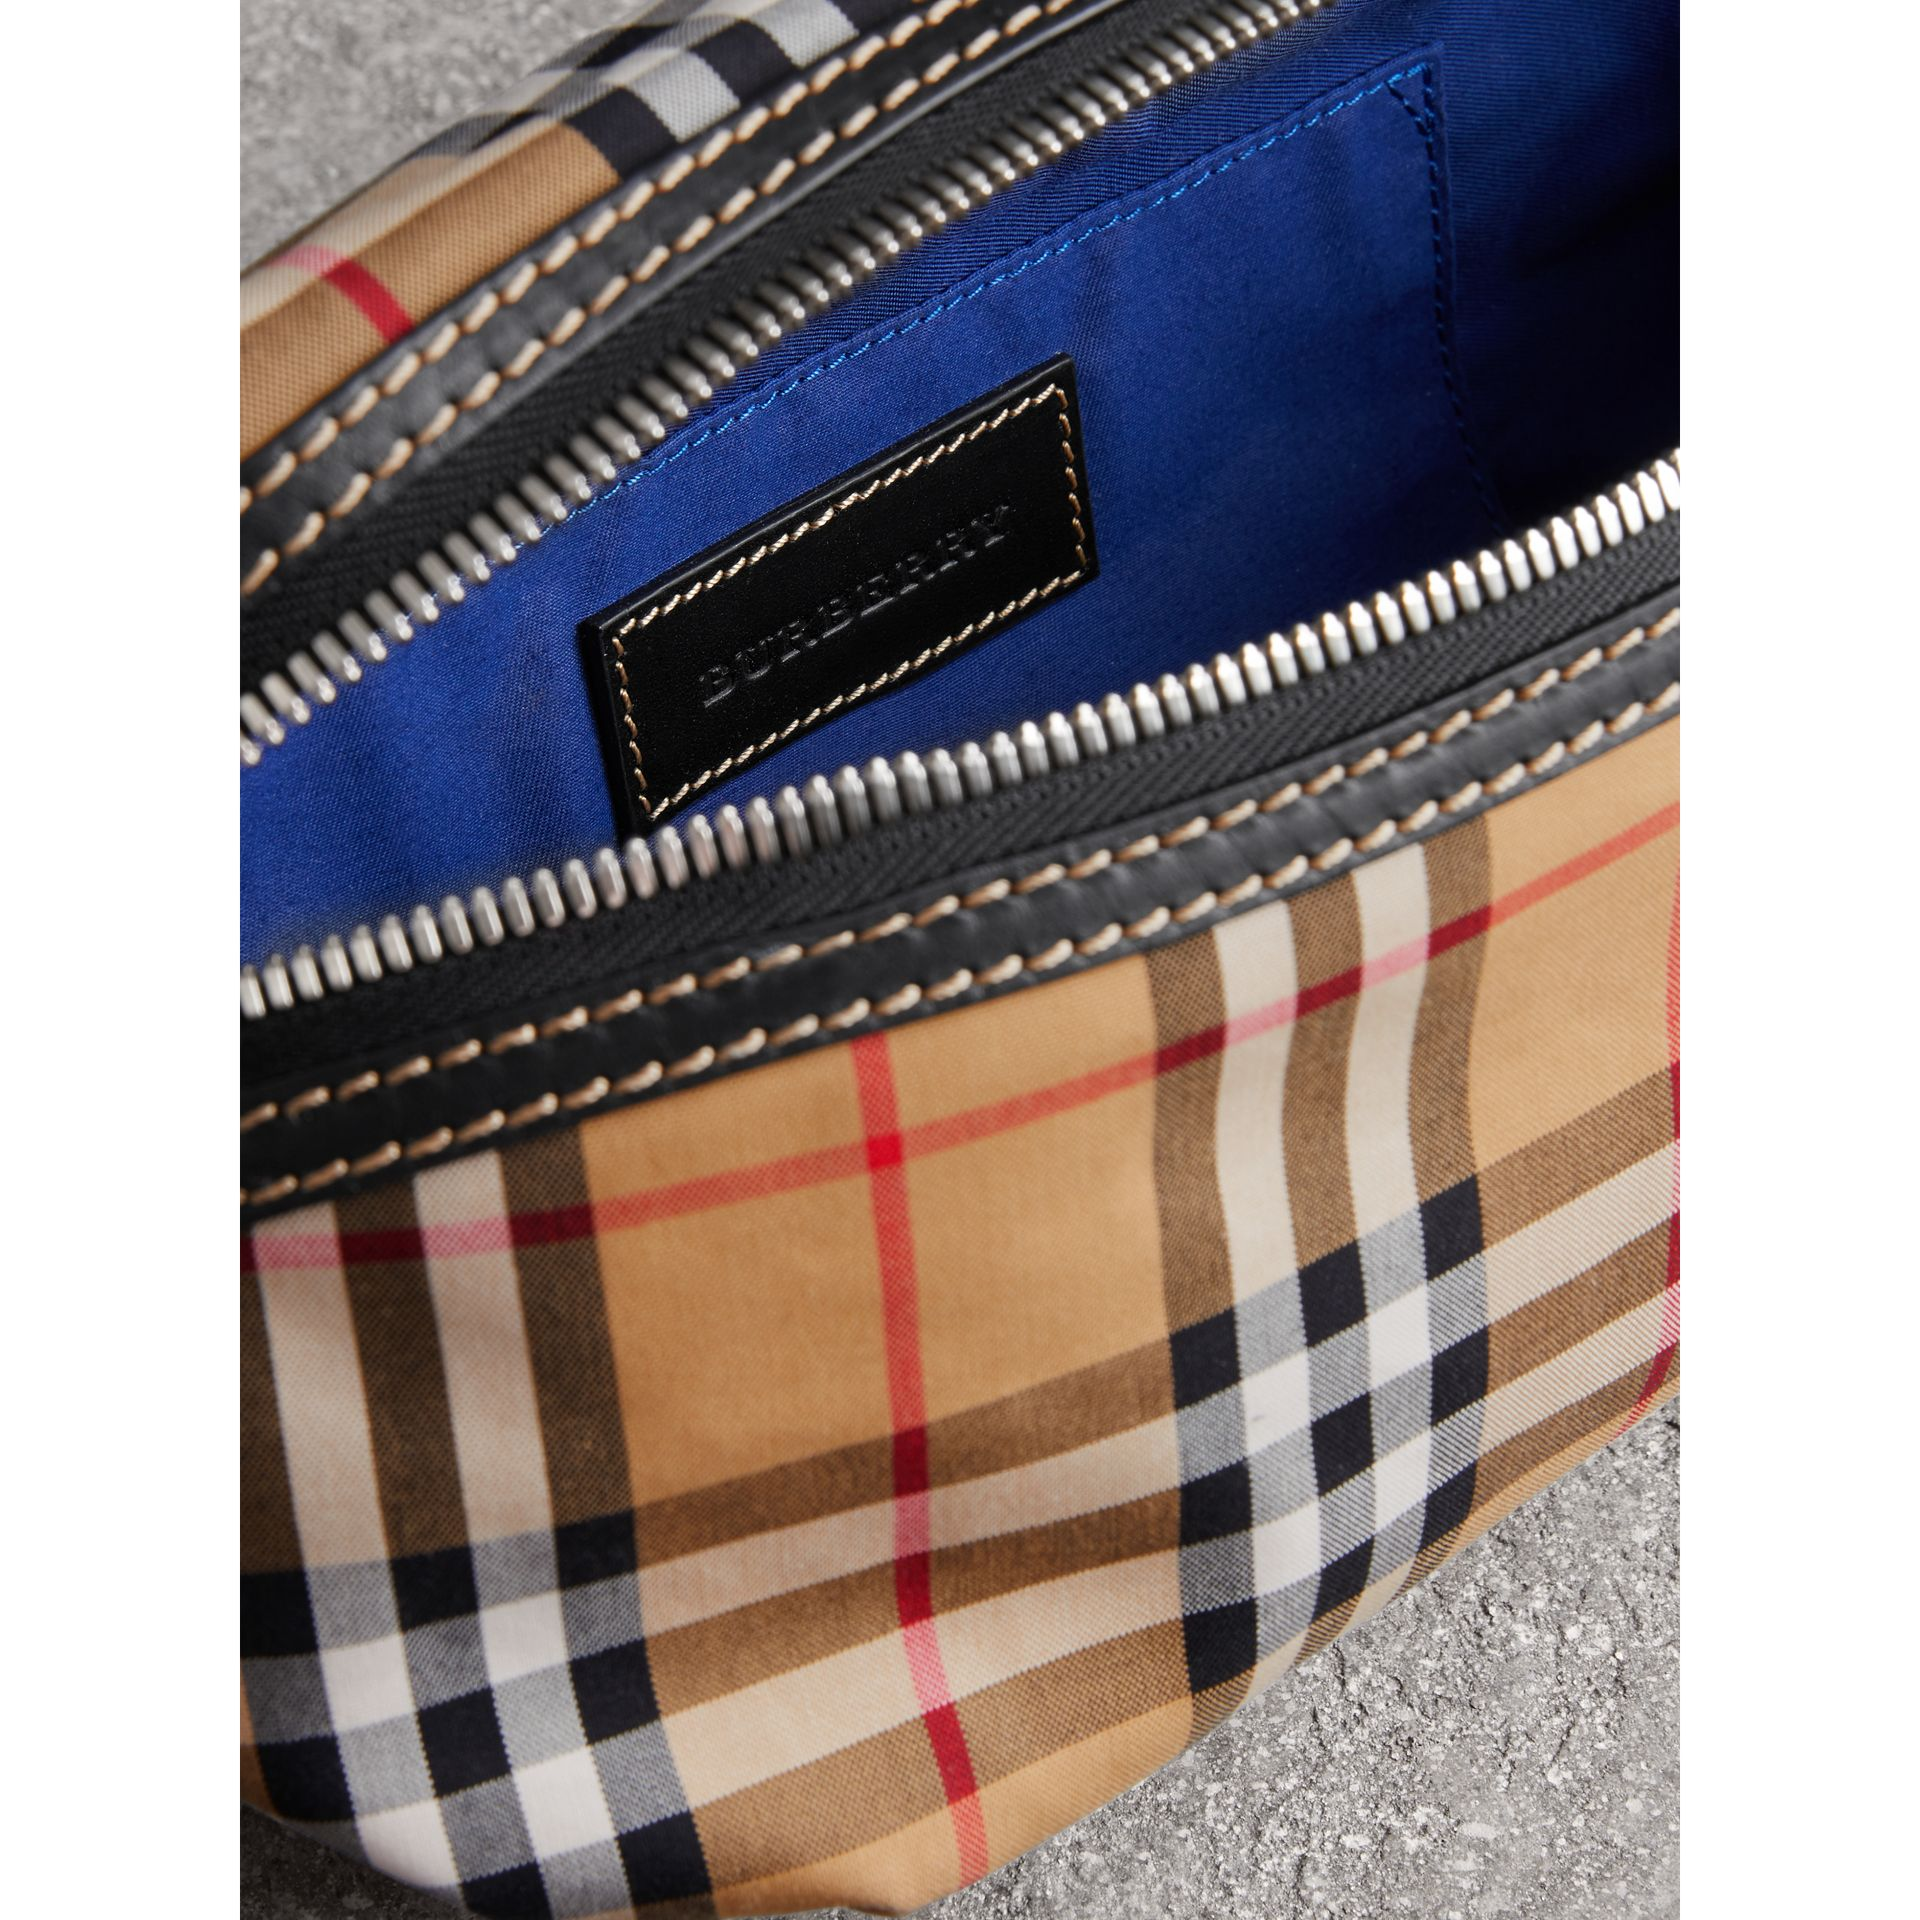 Medium Vintage Check Bum Bag in Canvas Blue | Burberry - gallery image 5